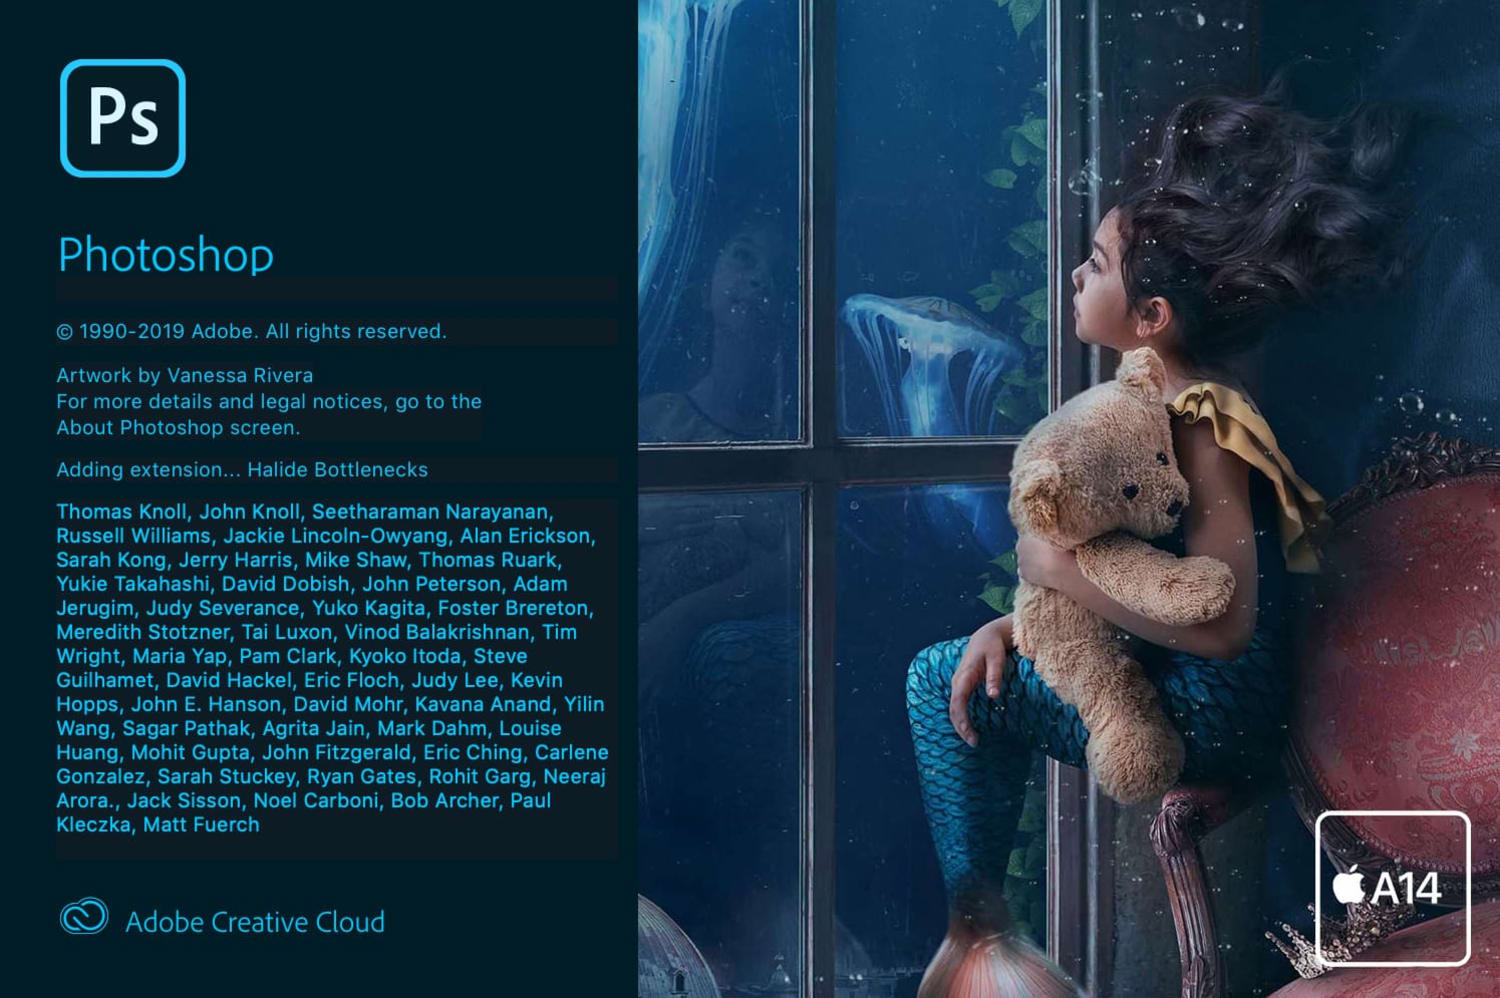 adobe-releases-photoshop-beta-build-with-apple-silicon-support-20201117-1